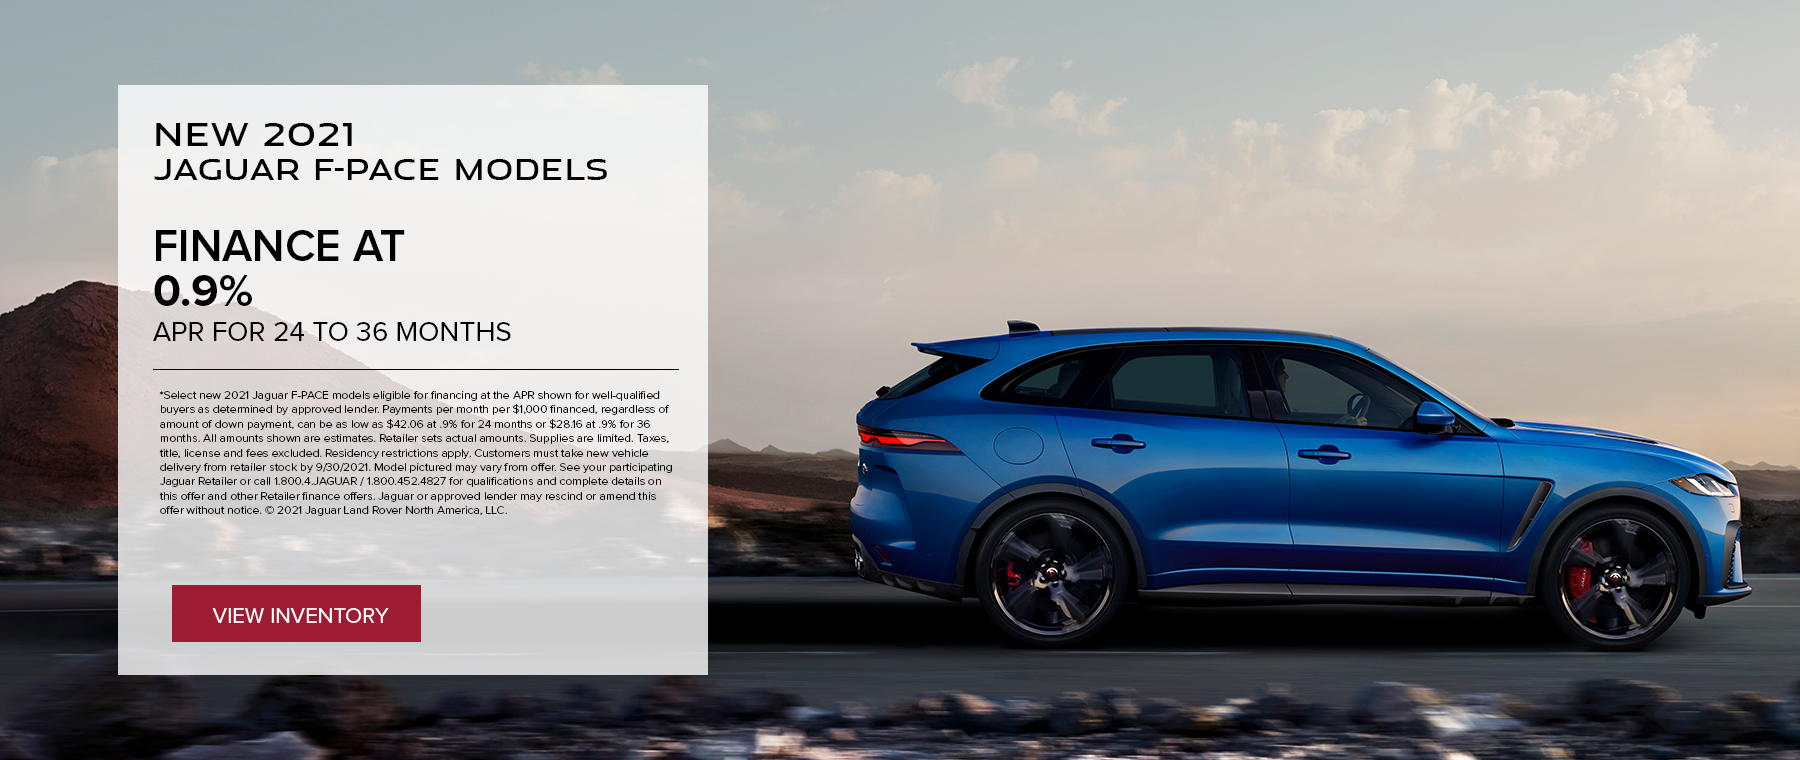 SELECT NEW 2021 JAGUAR F-PACE MODELS. BASE MSRP FROM $53,895. FINANCE AT 0.9% APR FOR 24 TO 36 MONTHS. EXCLUDES TAXES, TITLE, LICENSE AND FEES. OFFER ENDS 9/30/2021.